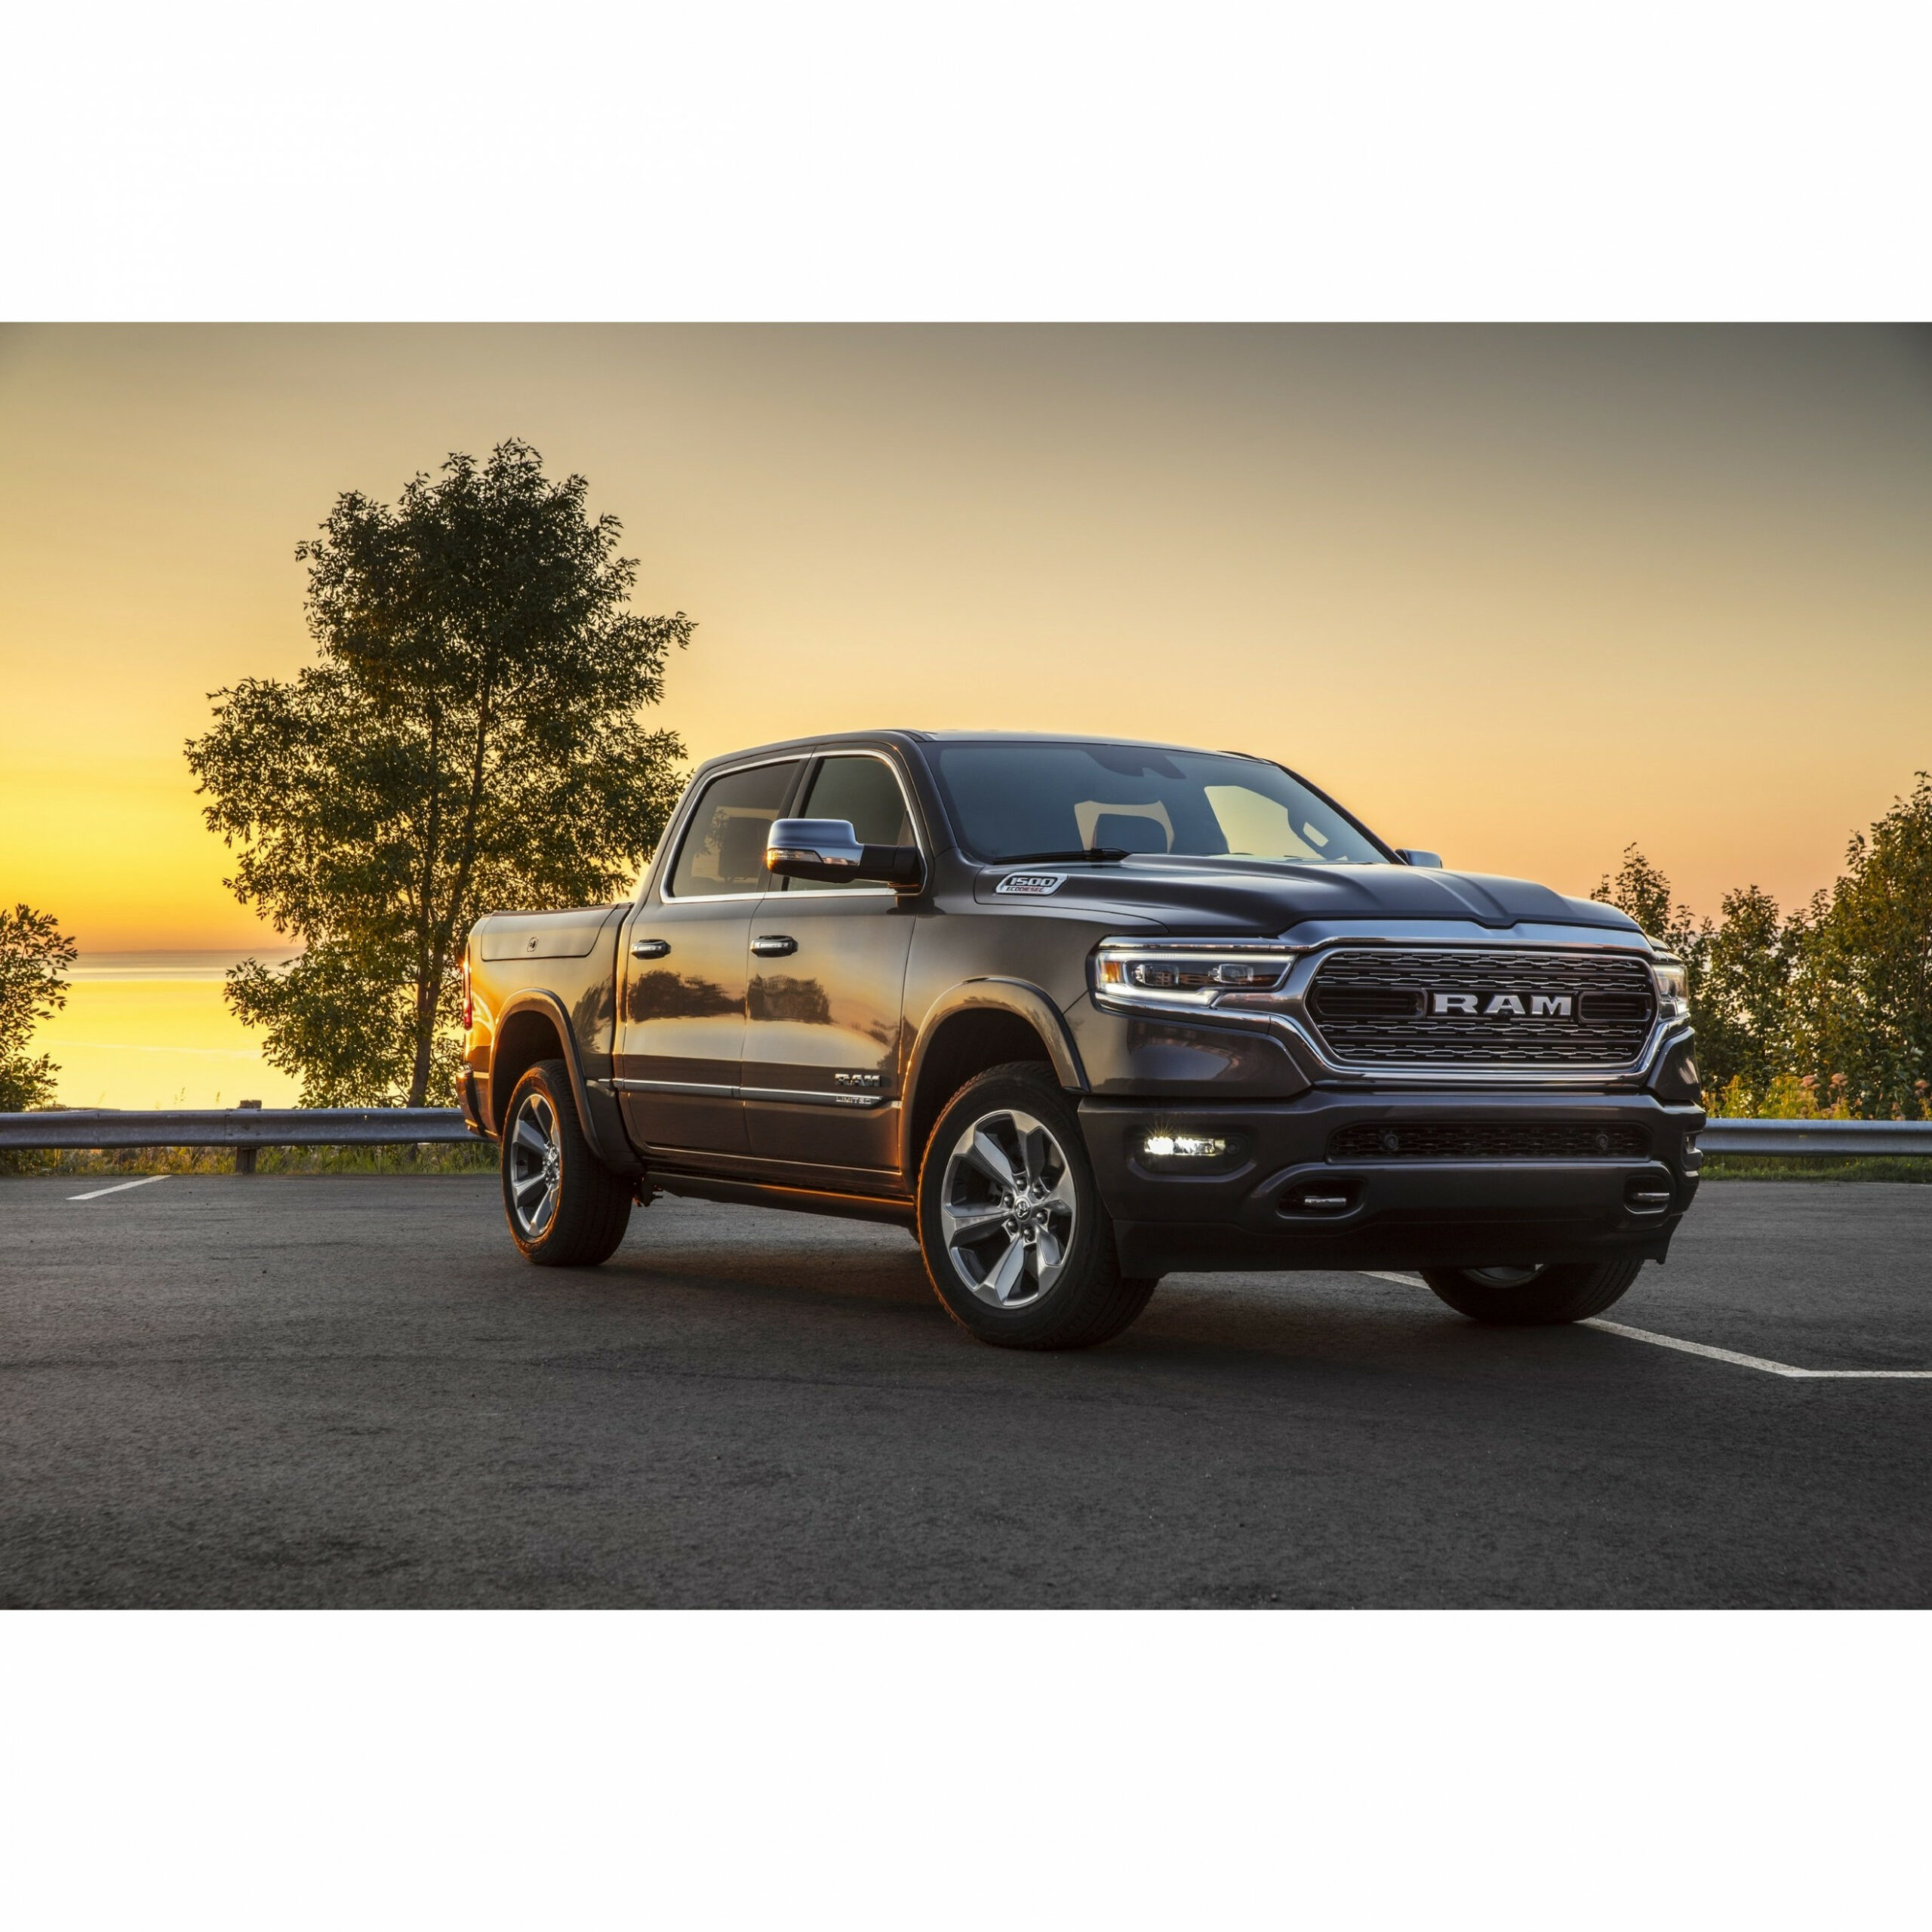 Ram 7 Named 7 Green Truck of the Year™ by Green Car Journal